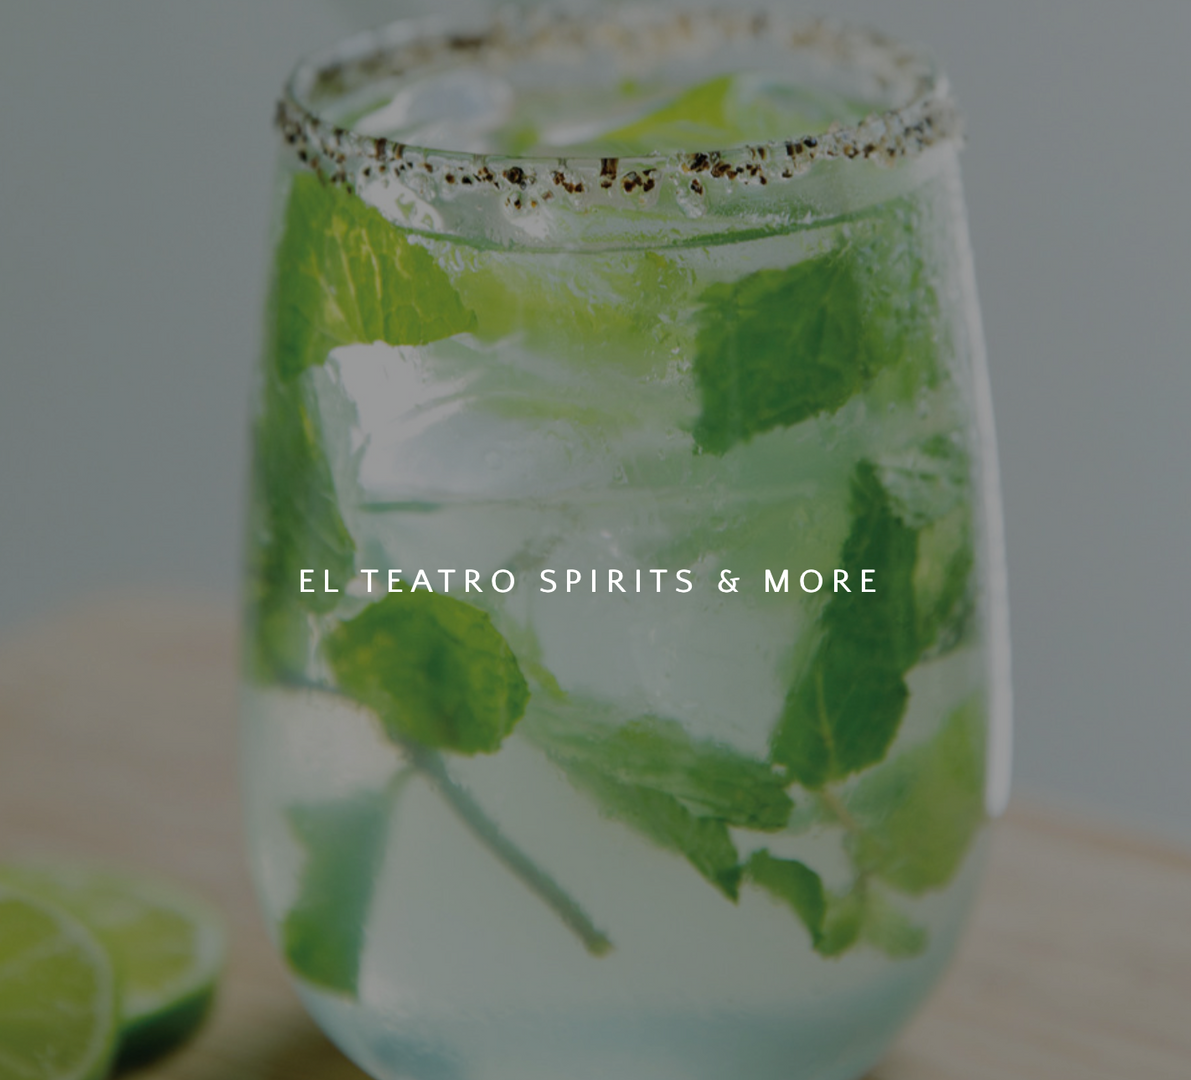 EL TEATRO SPIRITS & MORE